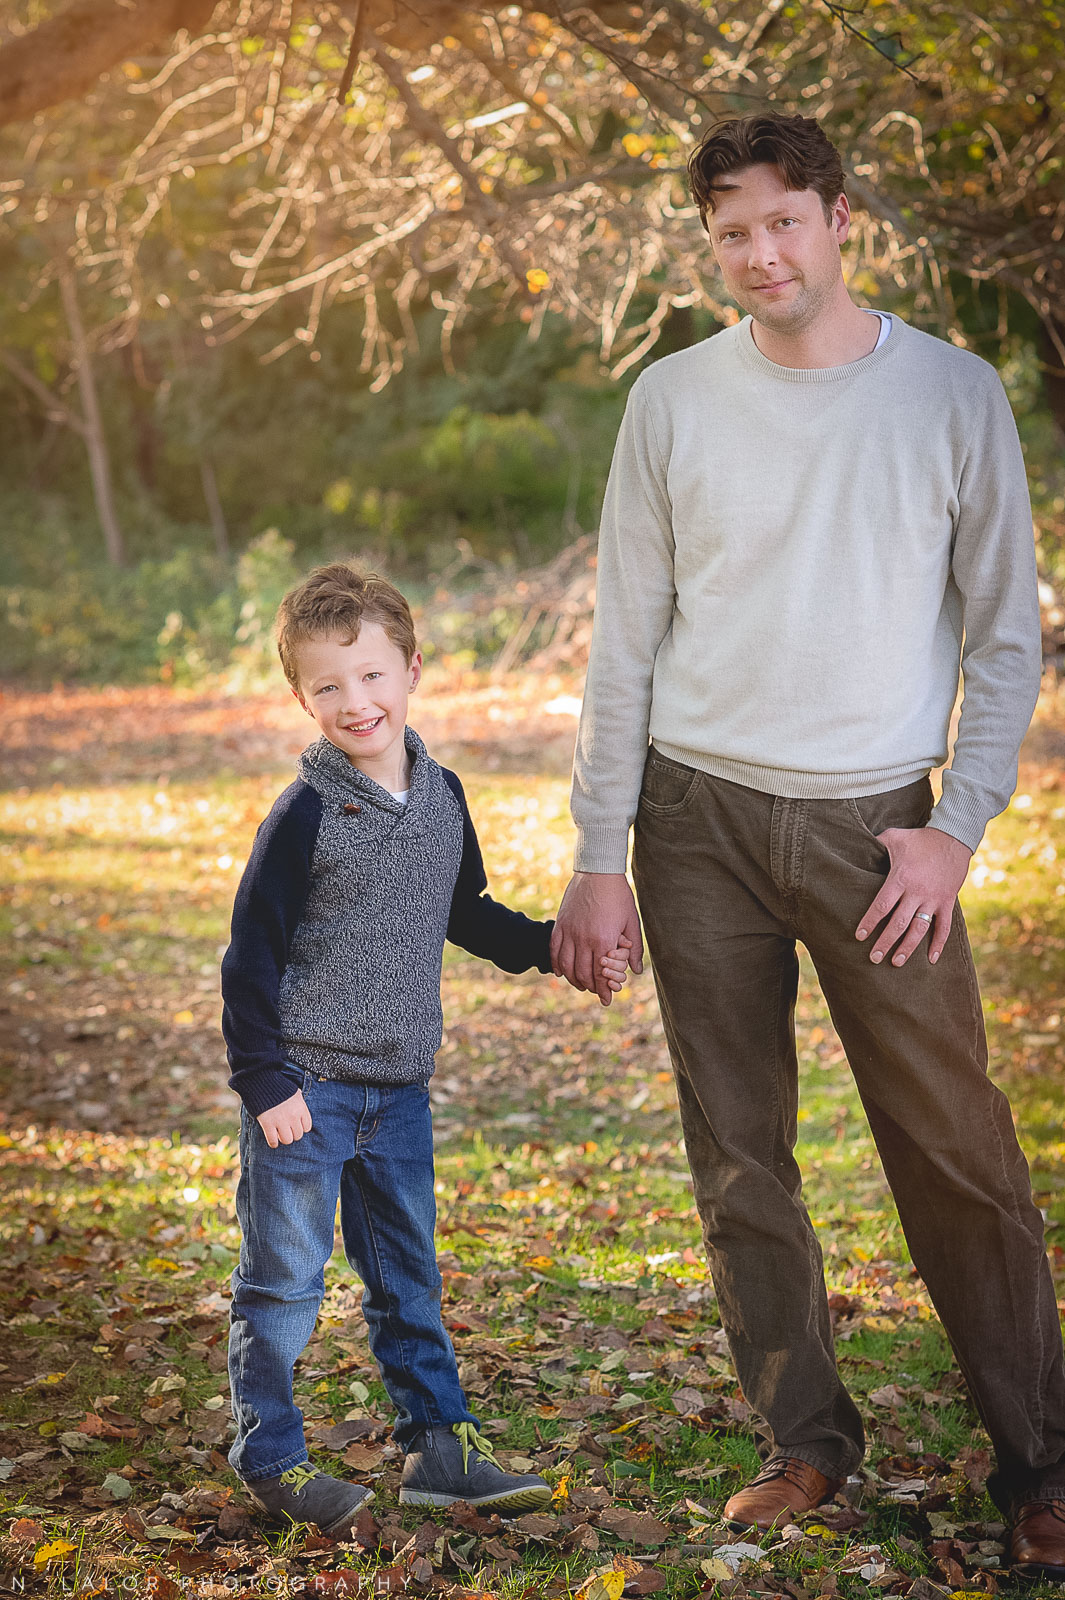 nlalor-photography-2014-styled-family-life-new-canaan-nature-center-fall-6.jpg